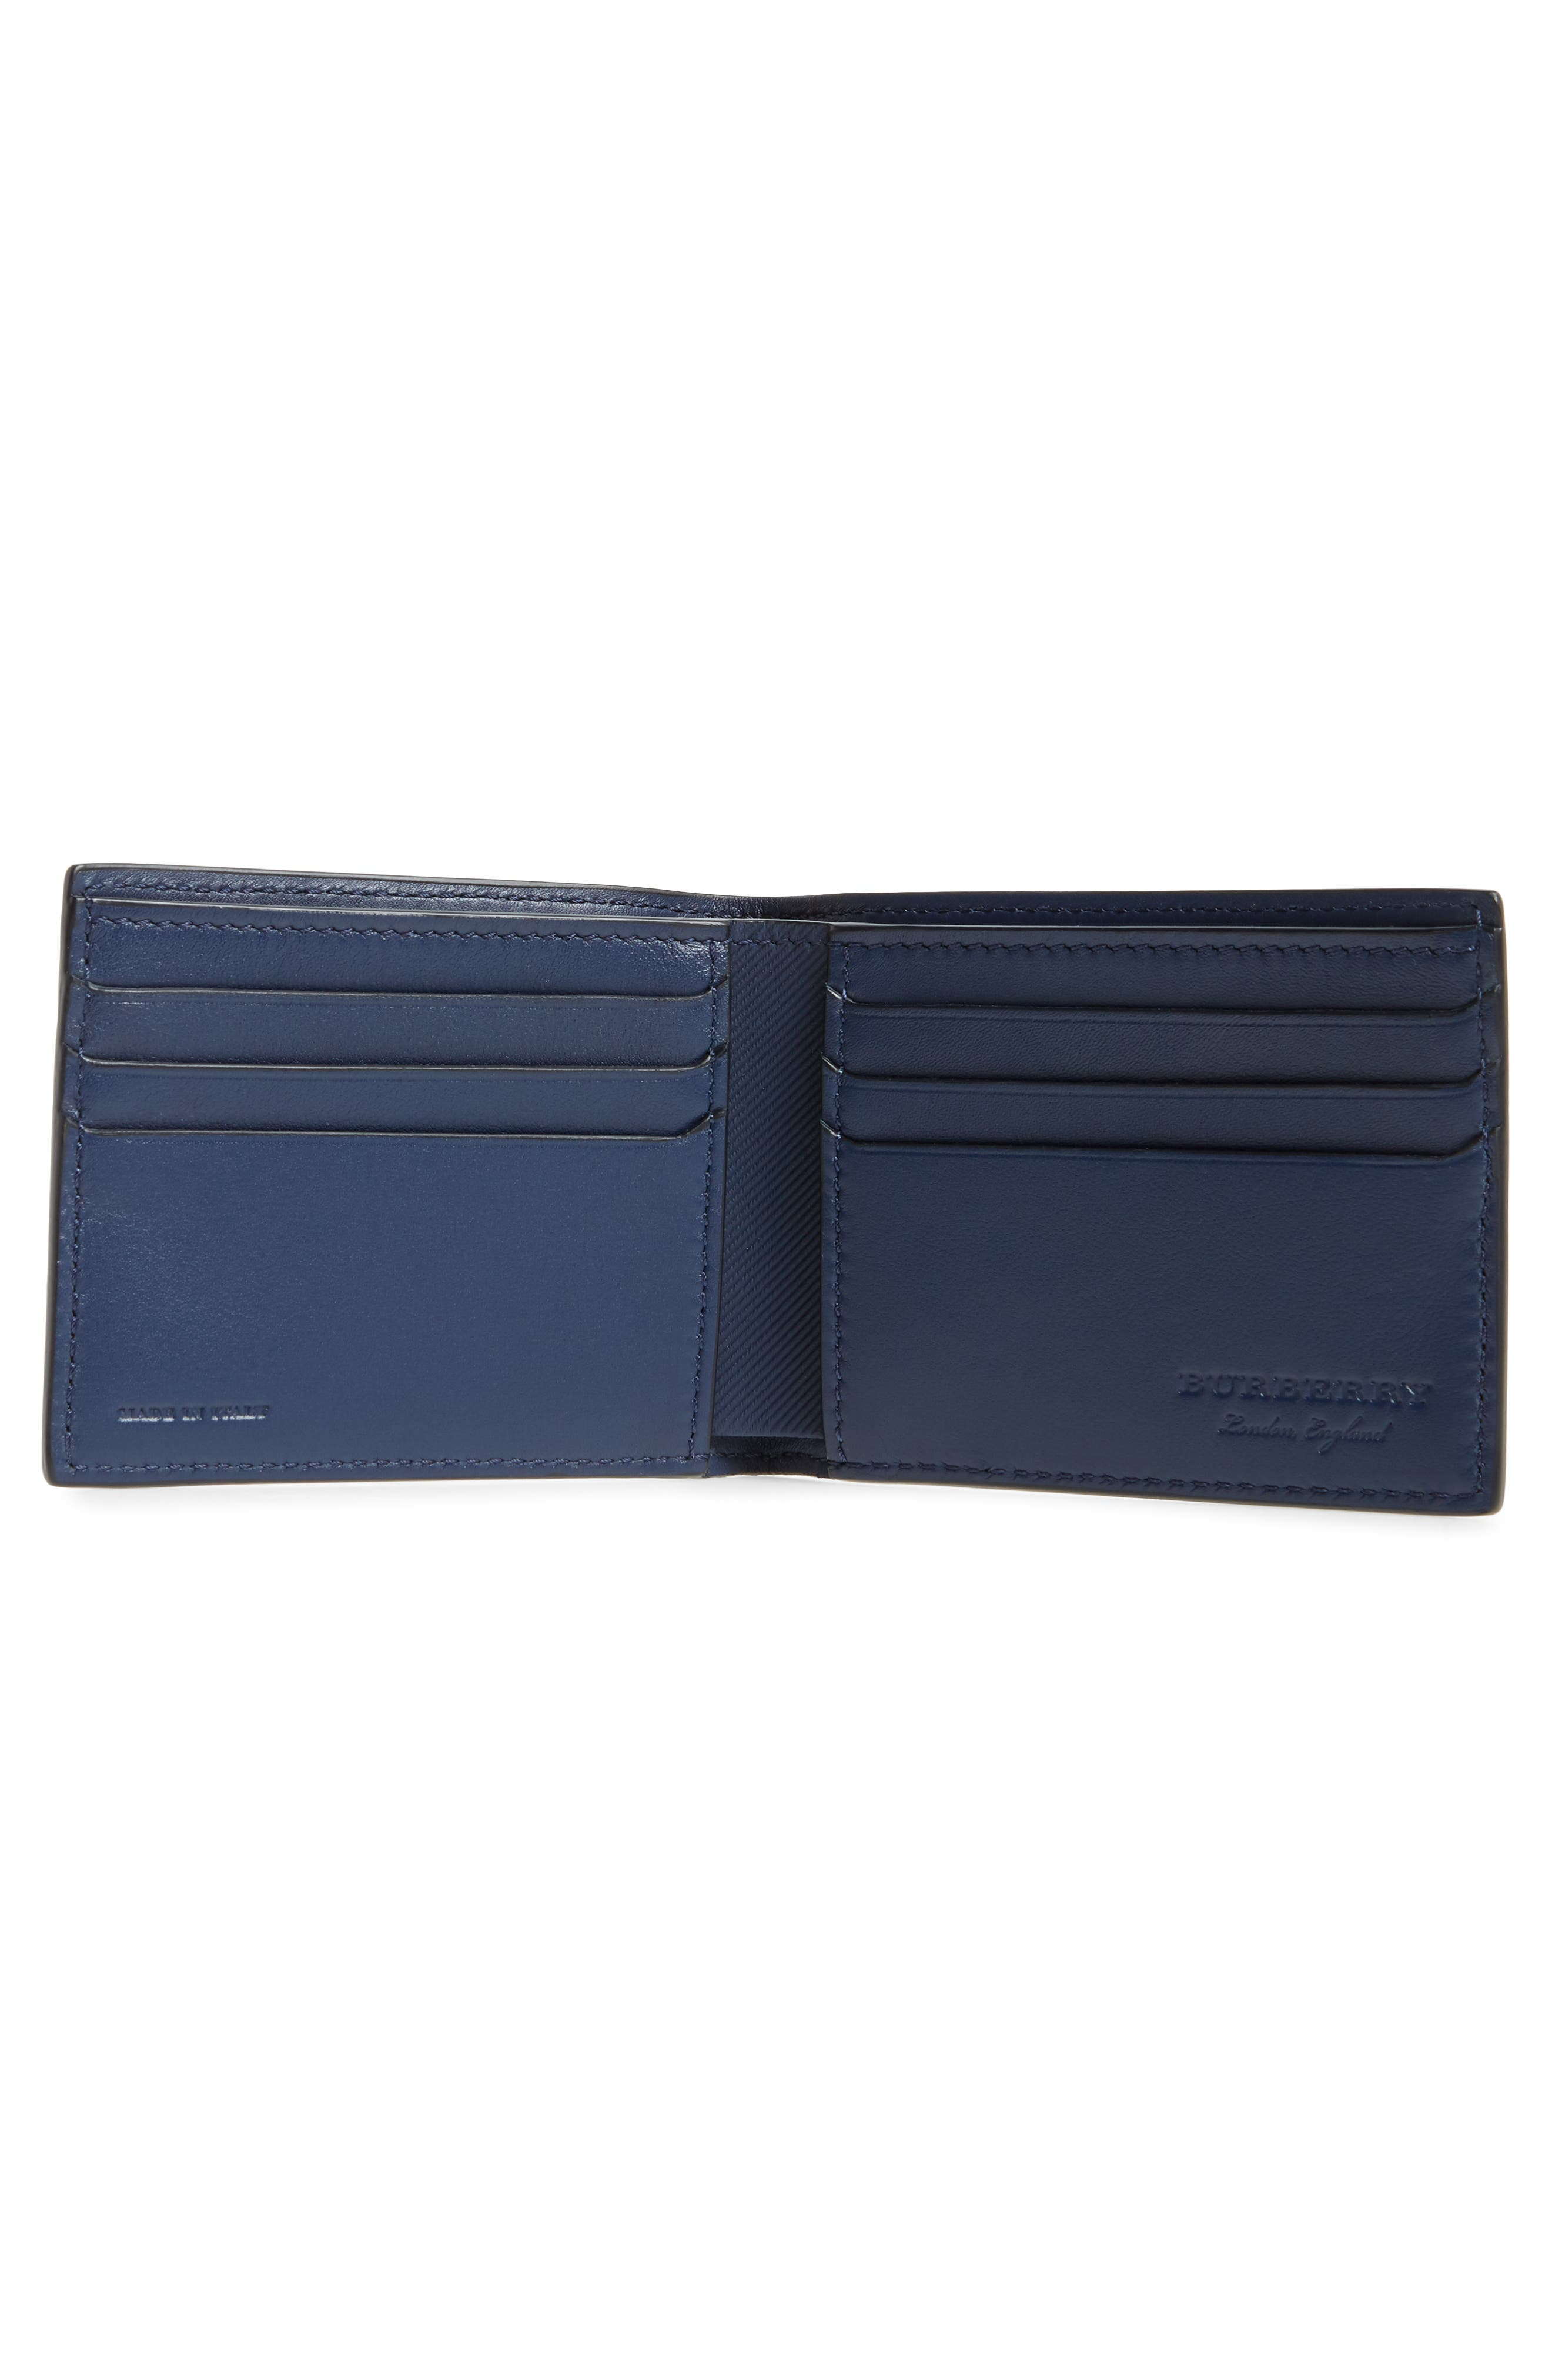 Trench Leather Wallet,                             Alternate thumbnail 2, color,                             Ink Blue